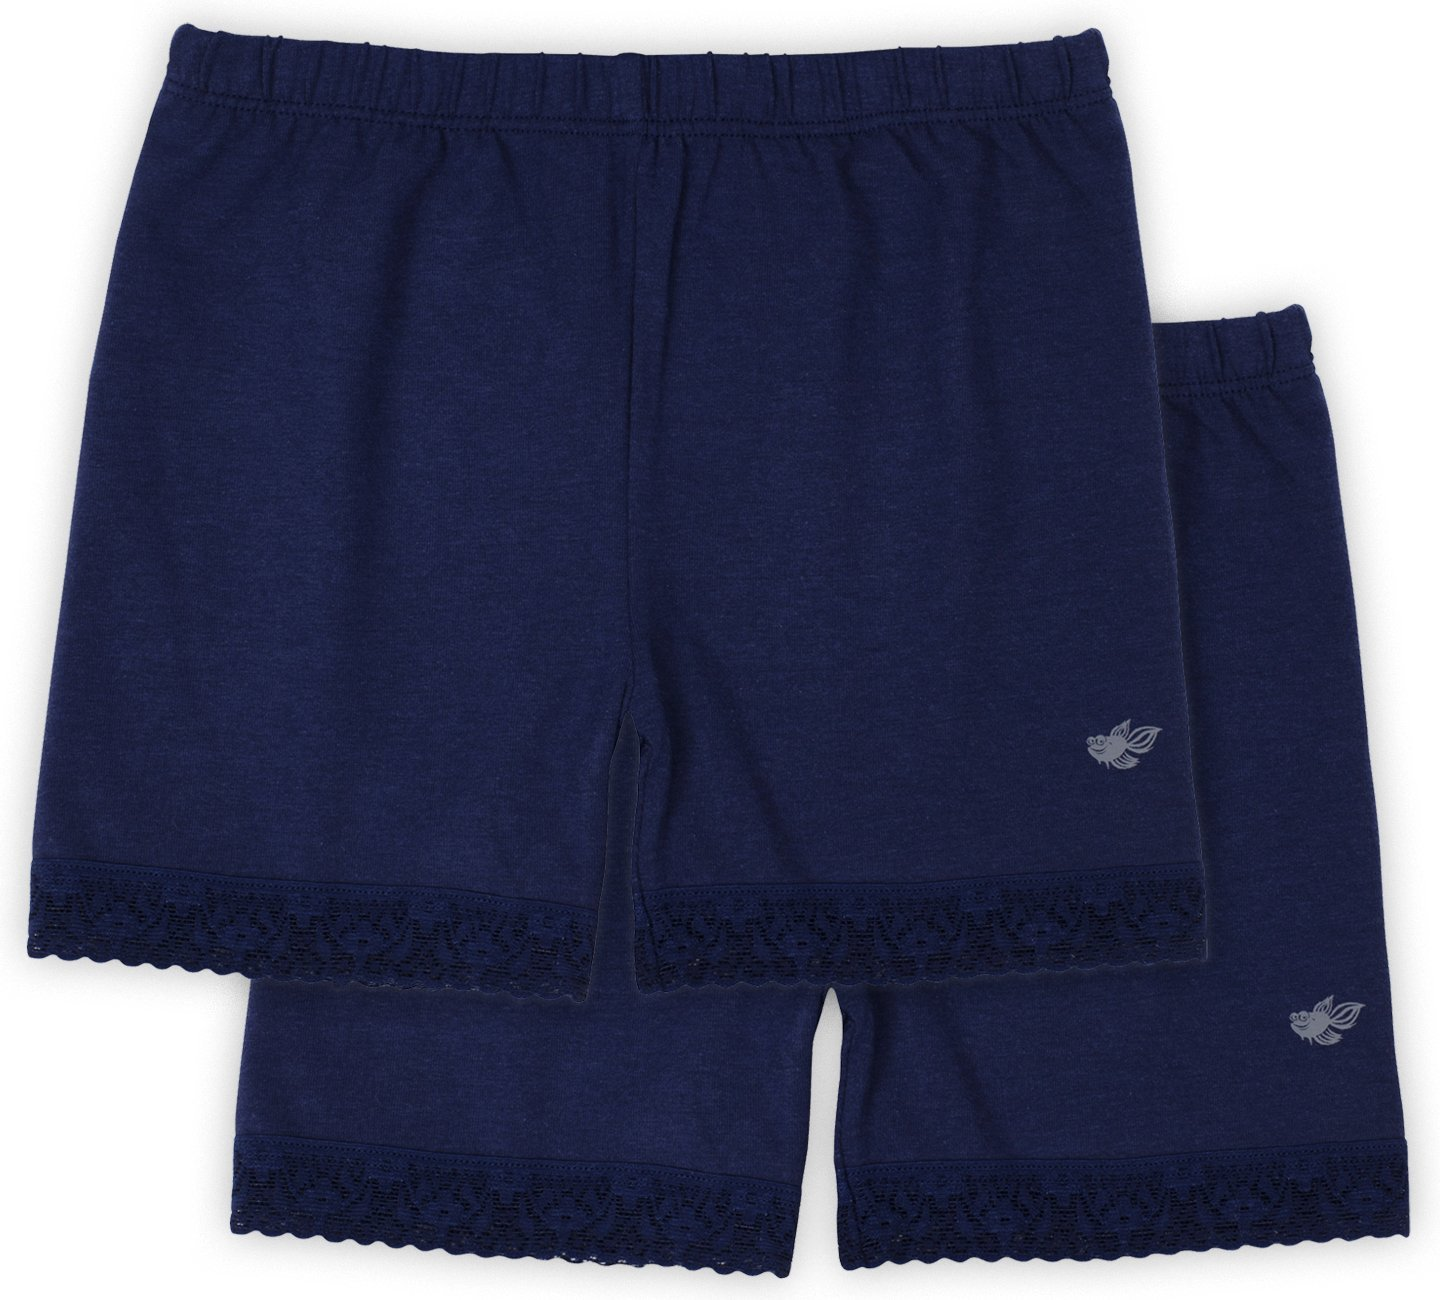 Lucky & Me Leah Girls Shorts Underwear, 2-Pack Underpants for Skirts, Uniforms, Dresses, Navy, 6